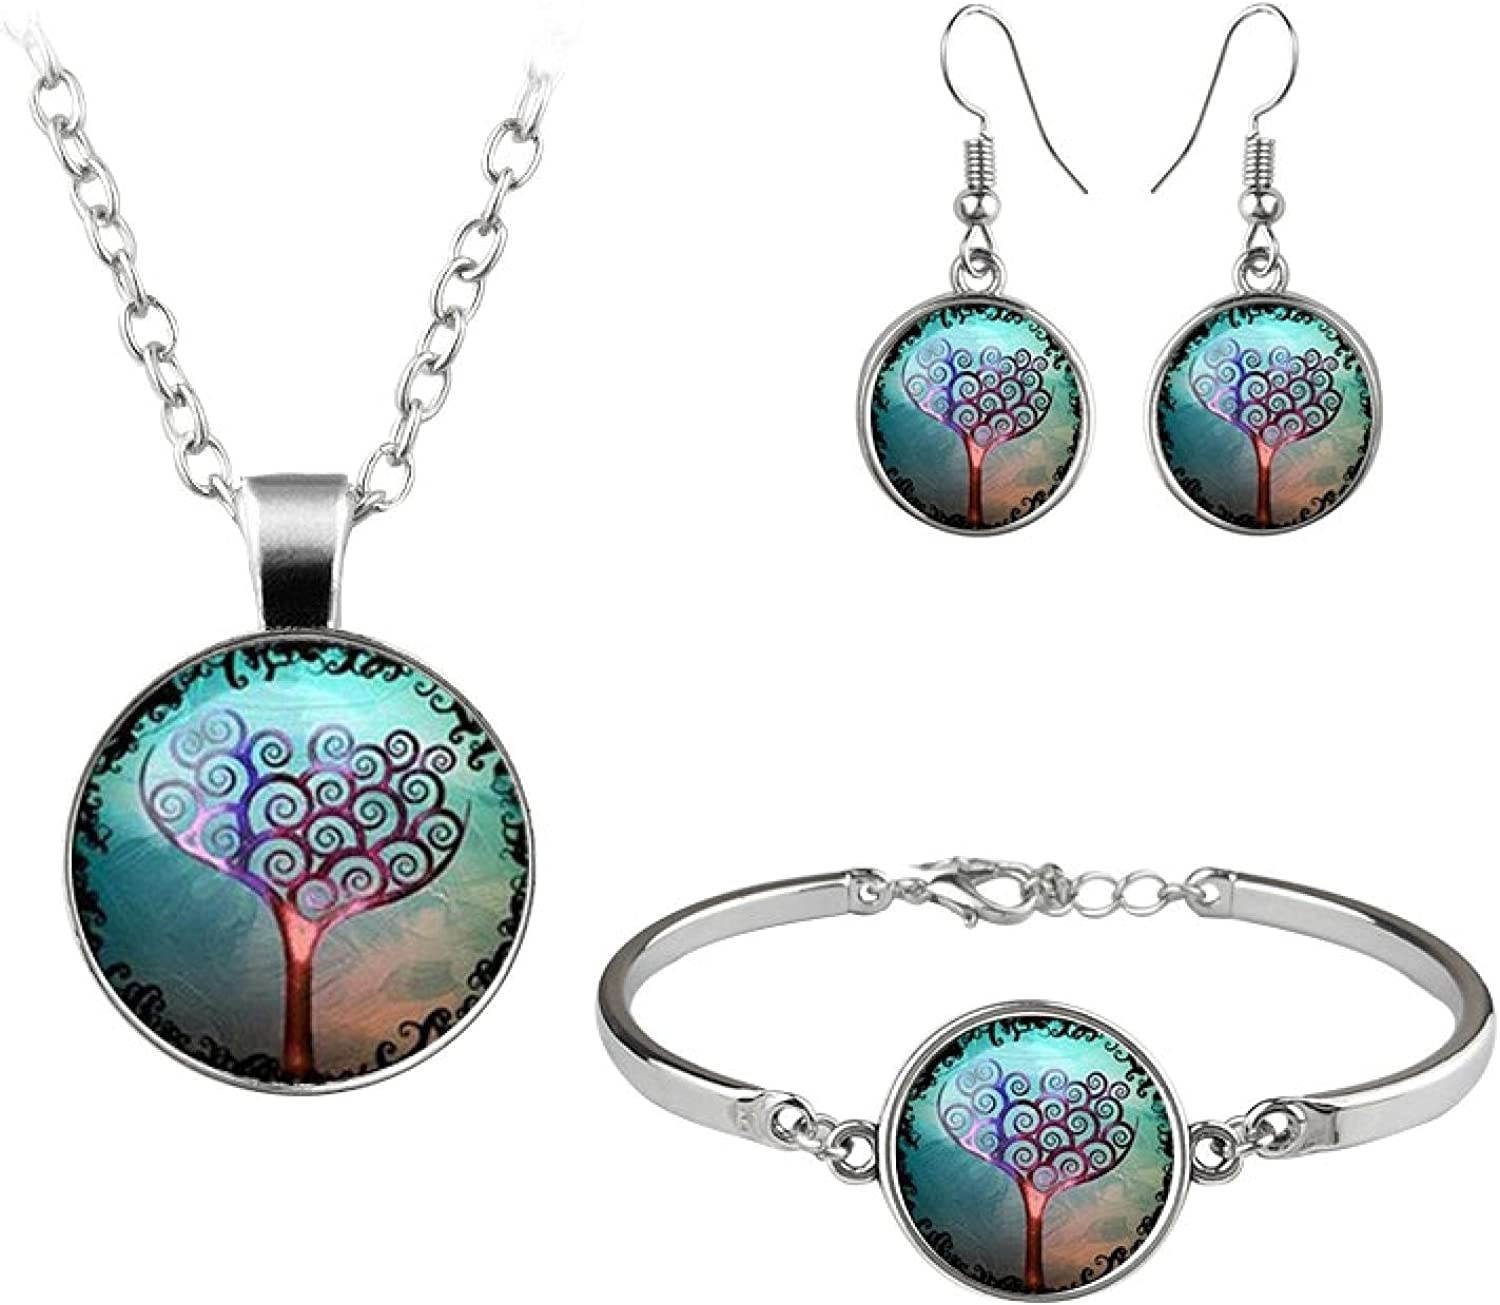 Classic Jewelry Set Cute Trees Drawing Glass Dome Necklace Bracelet Earrings For Women Girls Gift